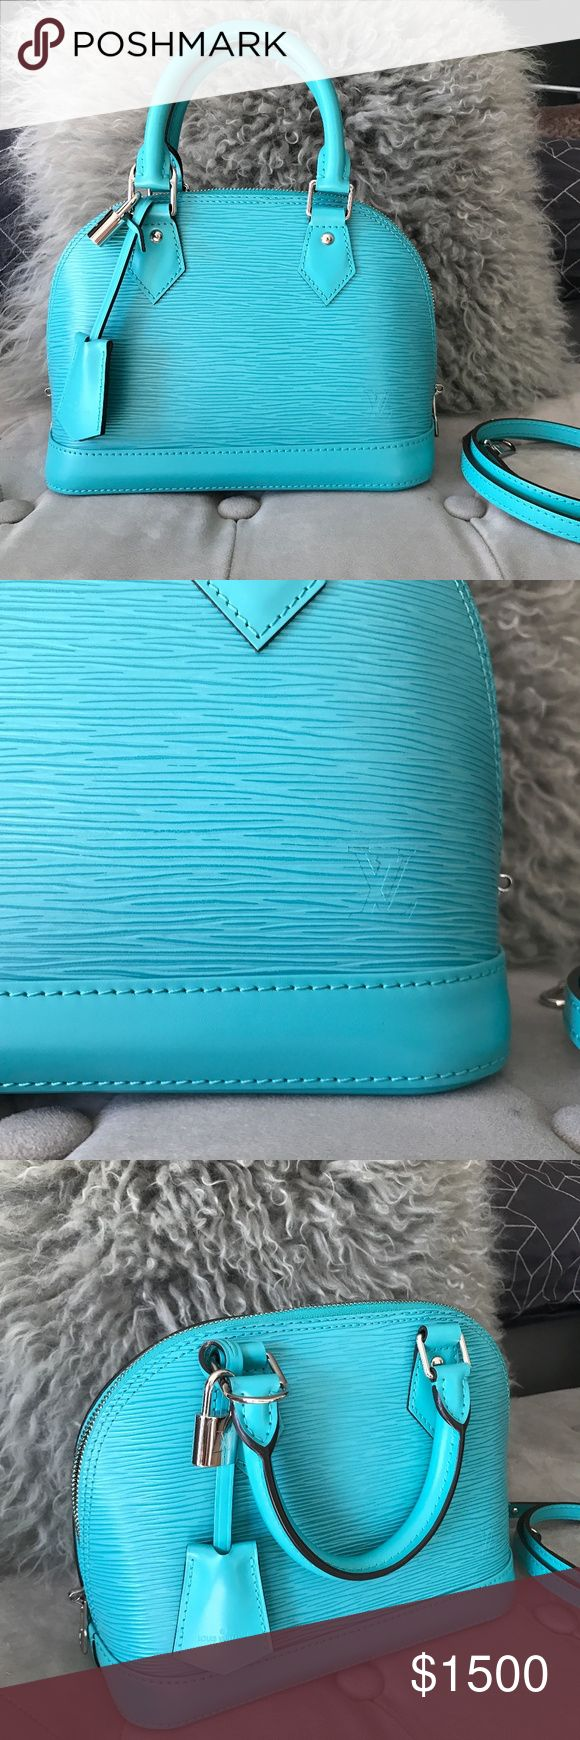 Louis Vuitton LV Epi Alma BB *Turquoise* RARE! Like New.  Made in France.  Beautiful and clean inside and outside.   Has tags & dust bag.  Purchased in the Louis Vuitton store in South Coast Plaza.  Retails for $1,590 plus tax. Louis Vuitton Bags Crossbody Bags